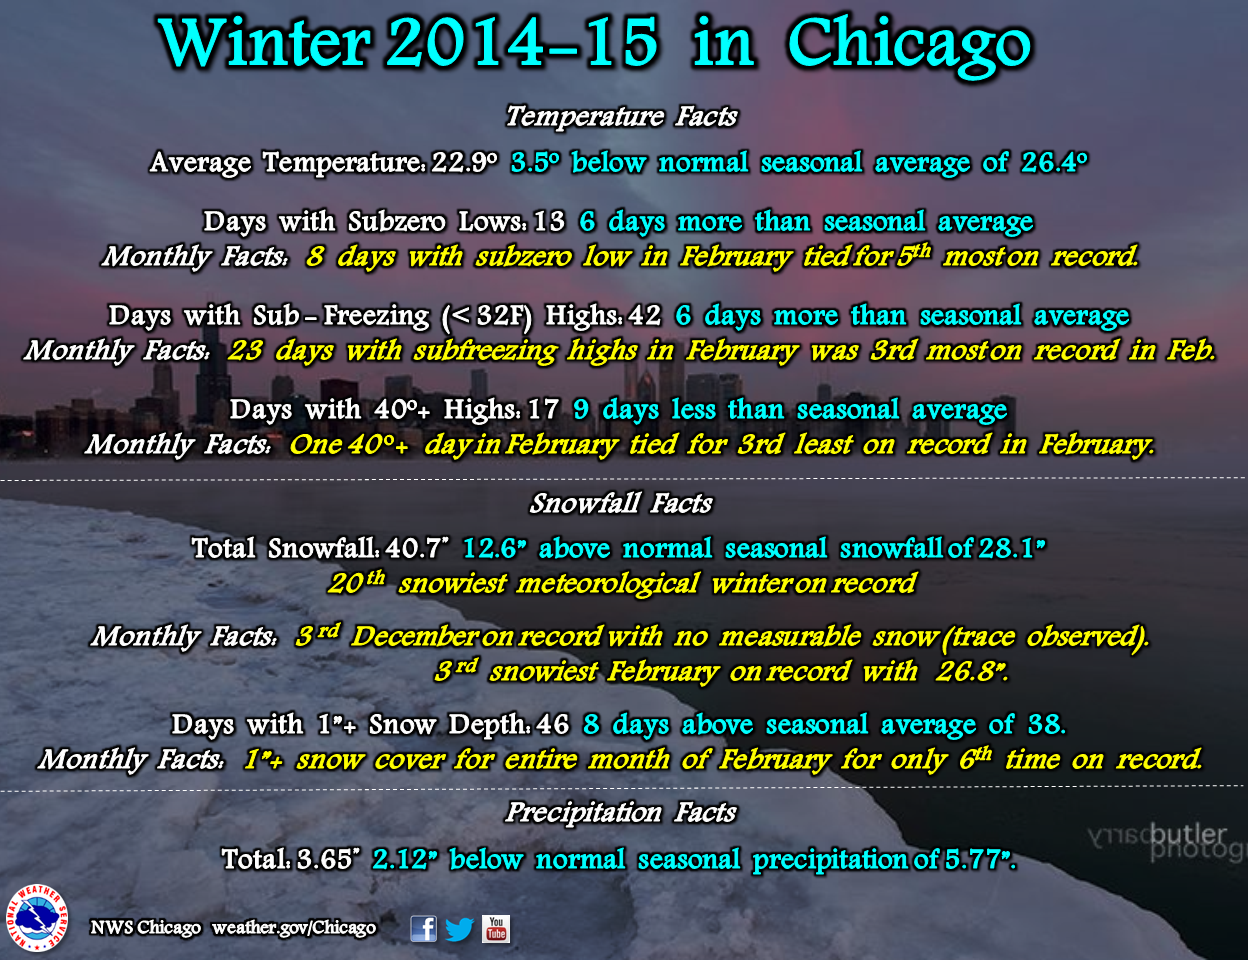 Winter 2014-15 in Chicago